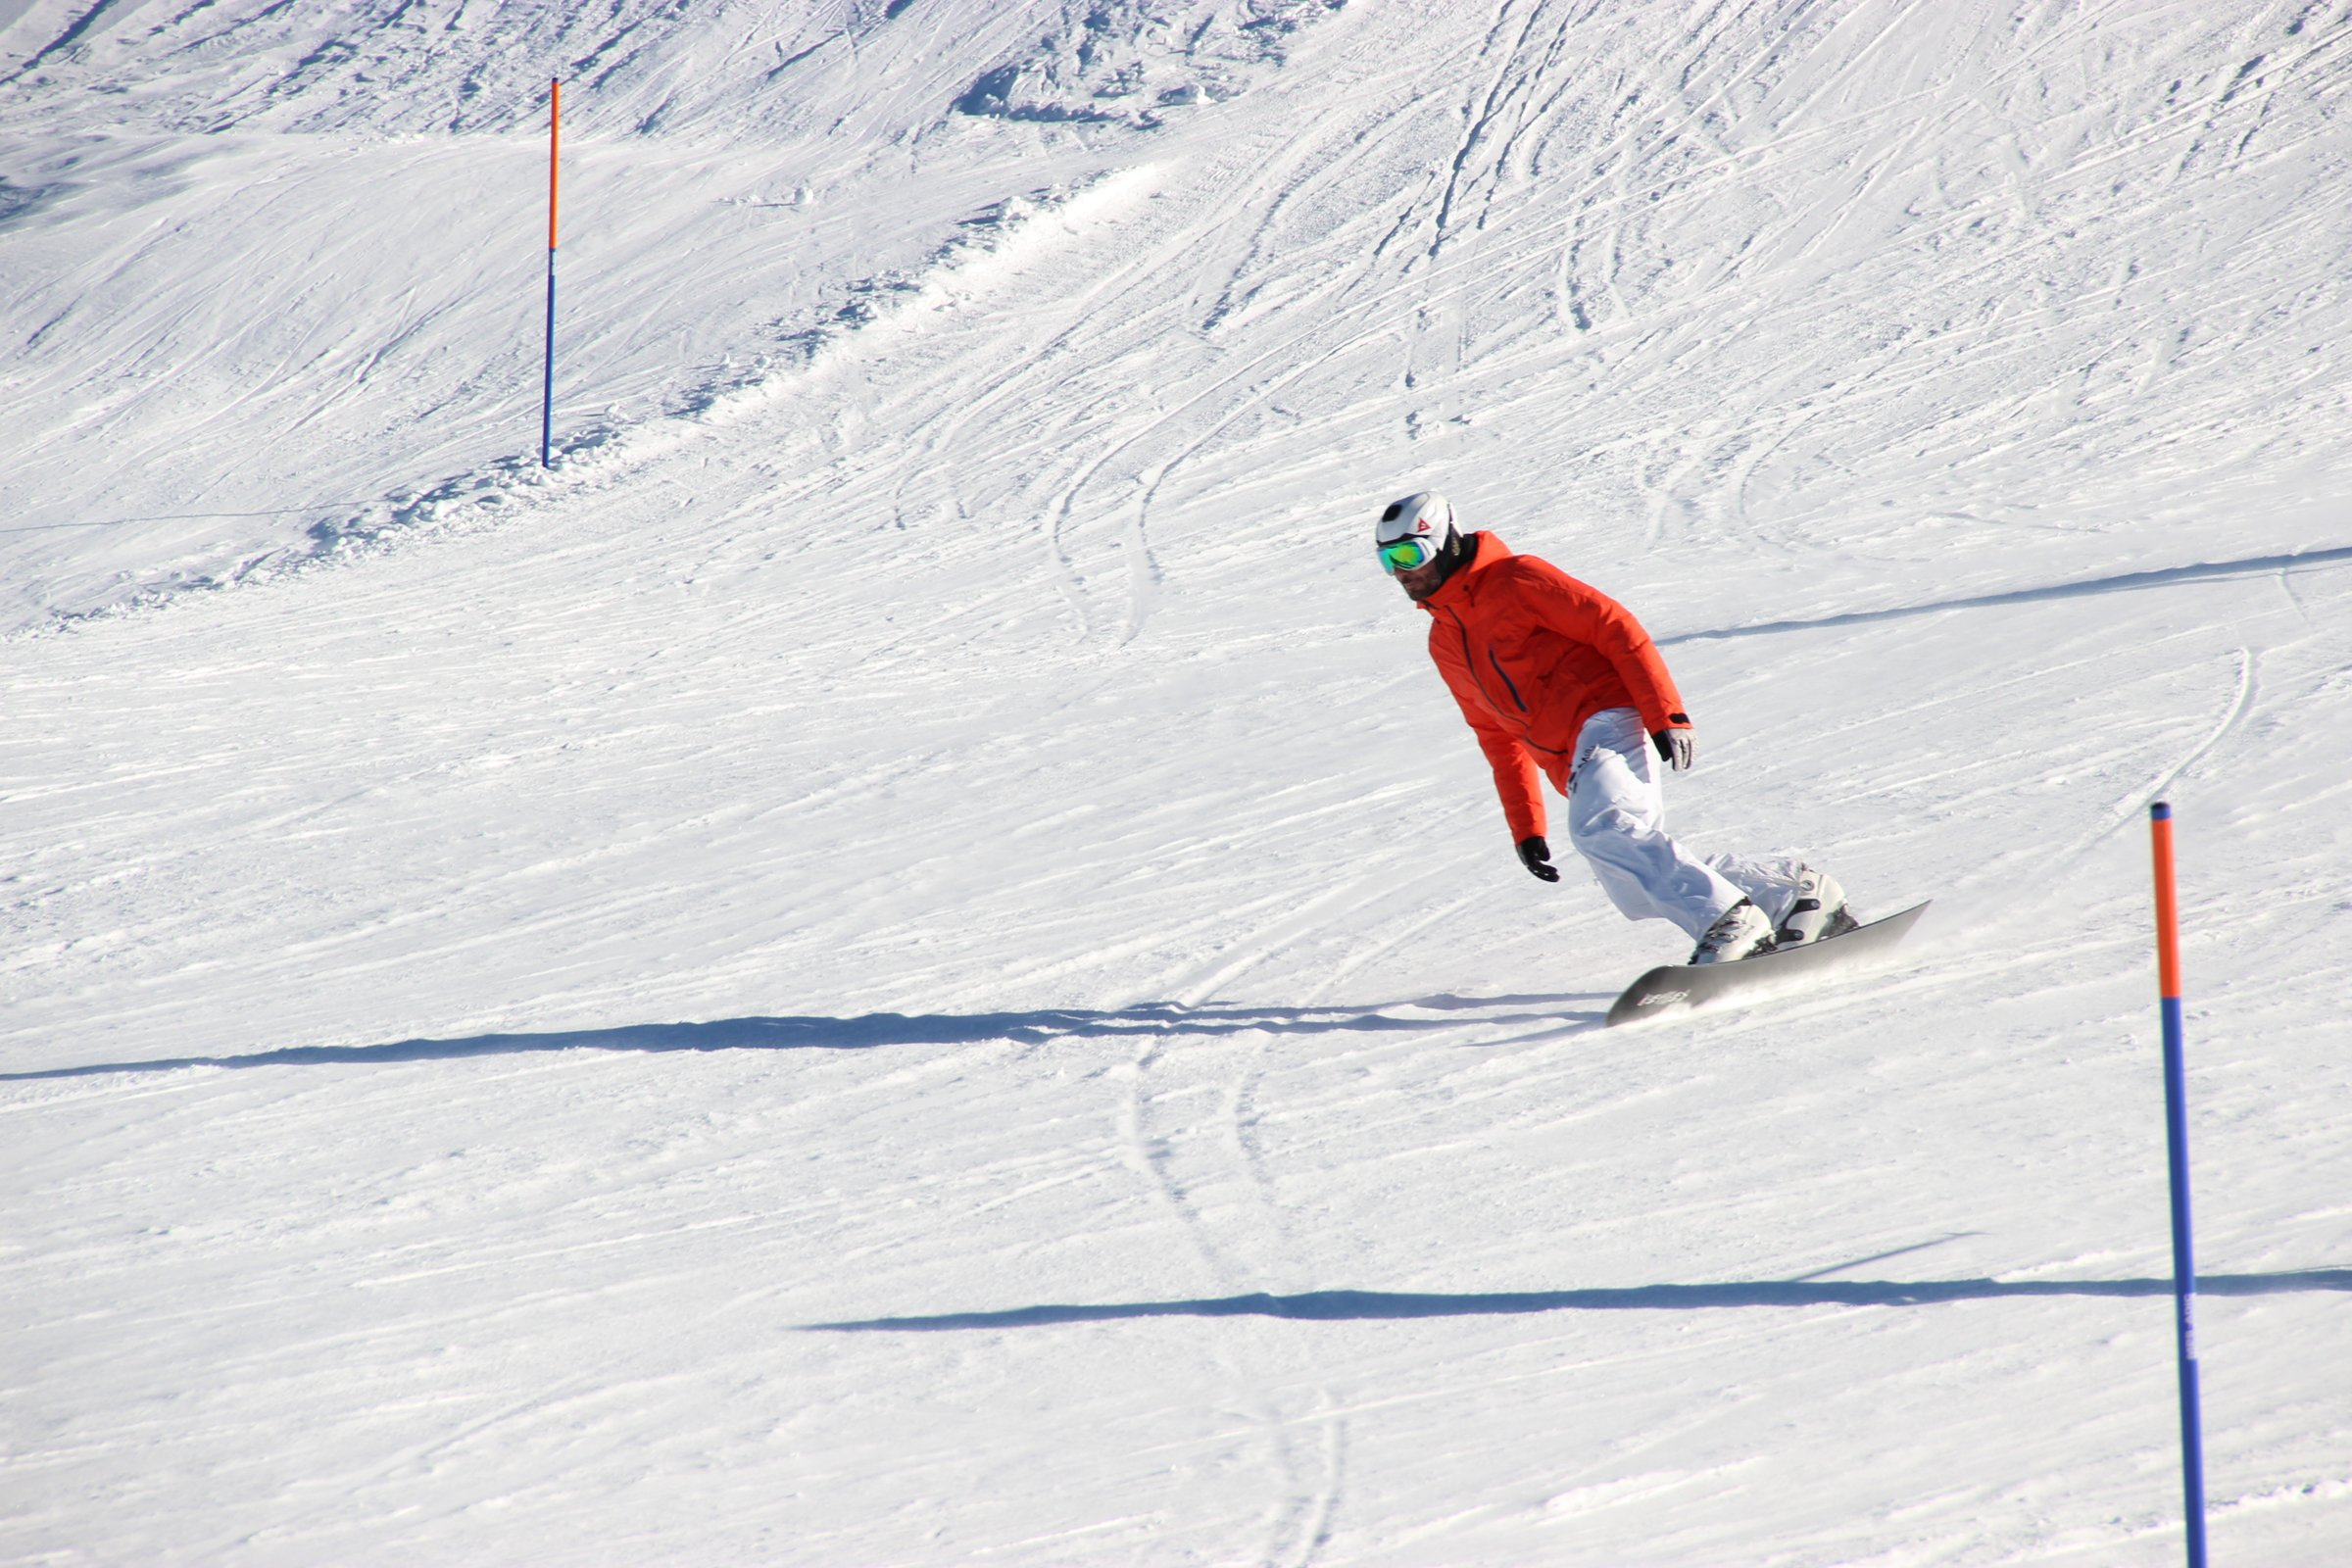 Skier On Snowboard Down Slope